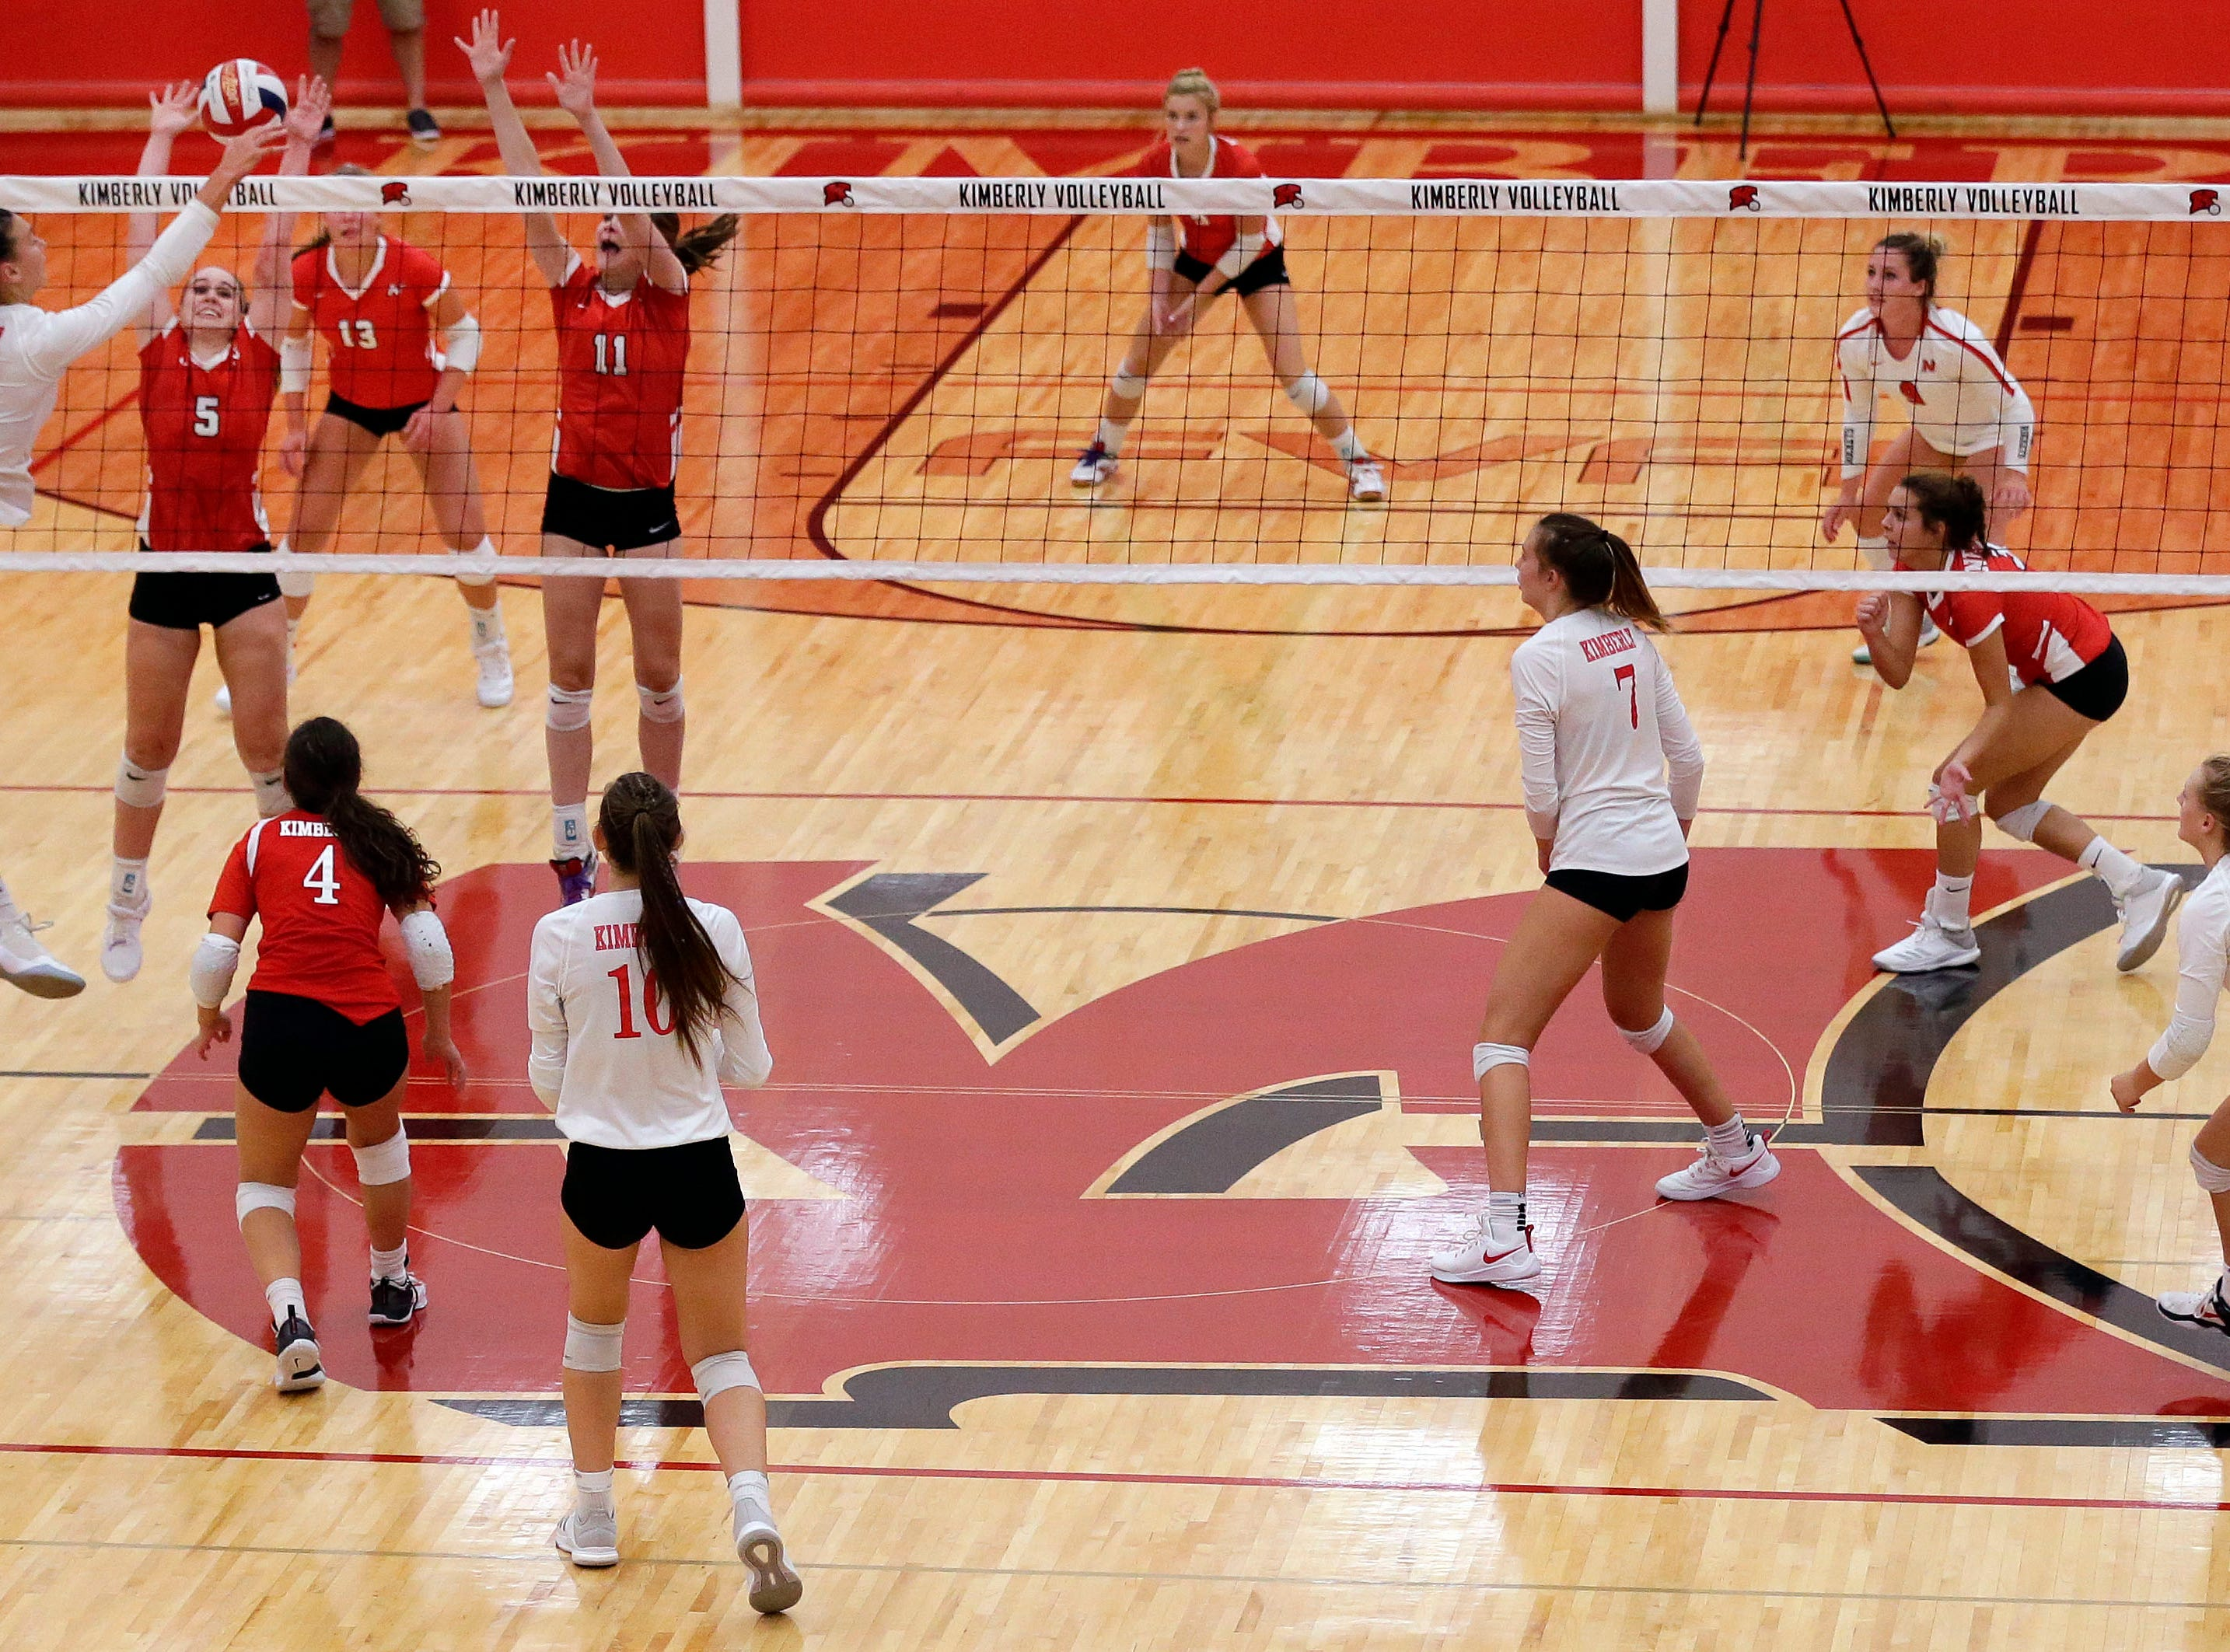 Kimberly, foreground, takes on Neenah in FVA girls volleyball Tuesday, September 11, 2018, at Kimberly High School in Kimberly, Wis.Ron Page/USA TODAY NETWORK-Wisconsin